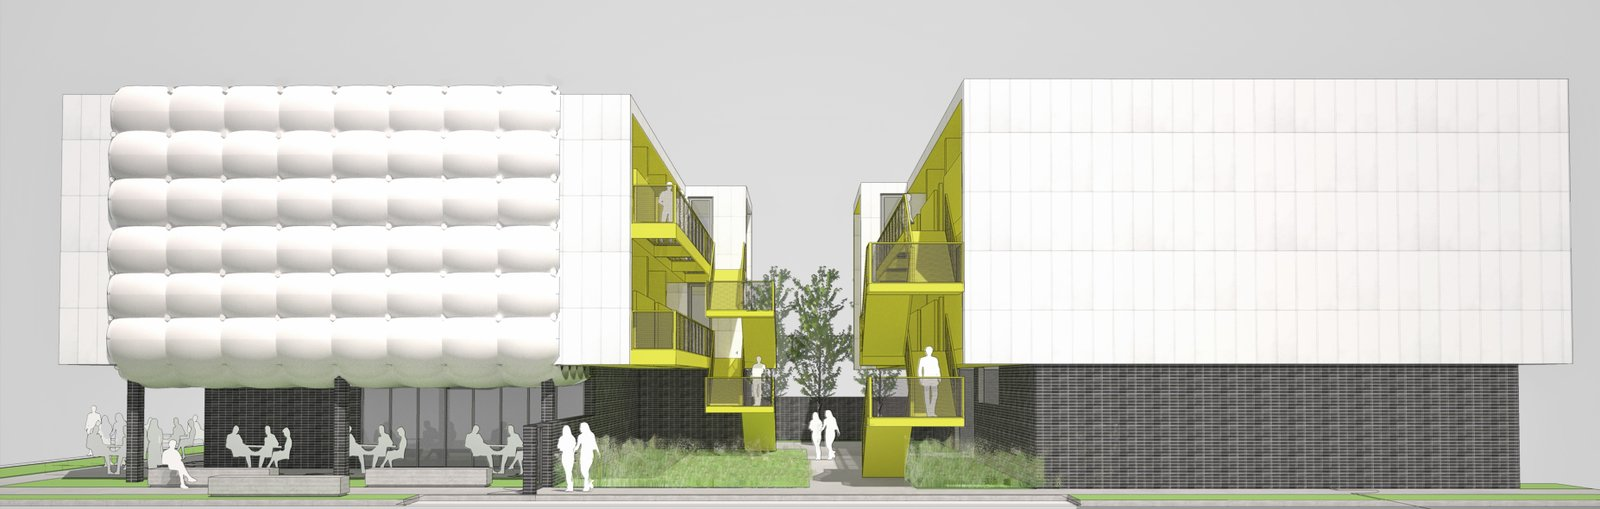 Central Ninth Mixed Use Development by Sparano + Mooney Architecture